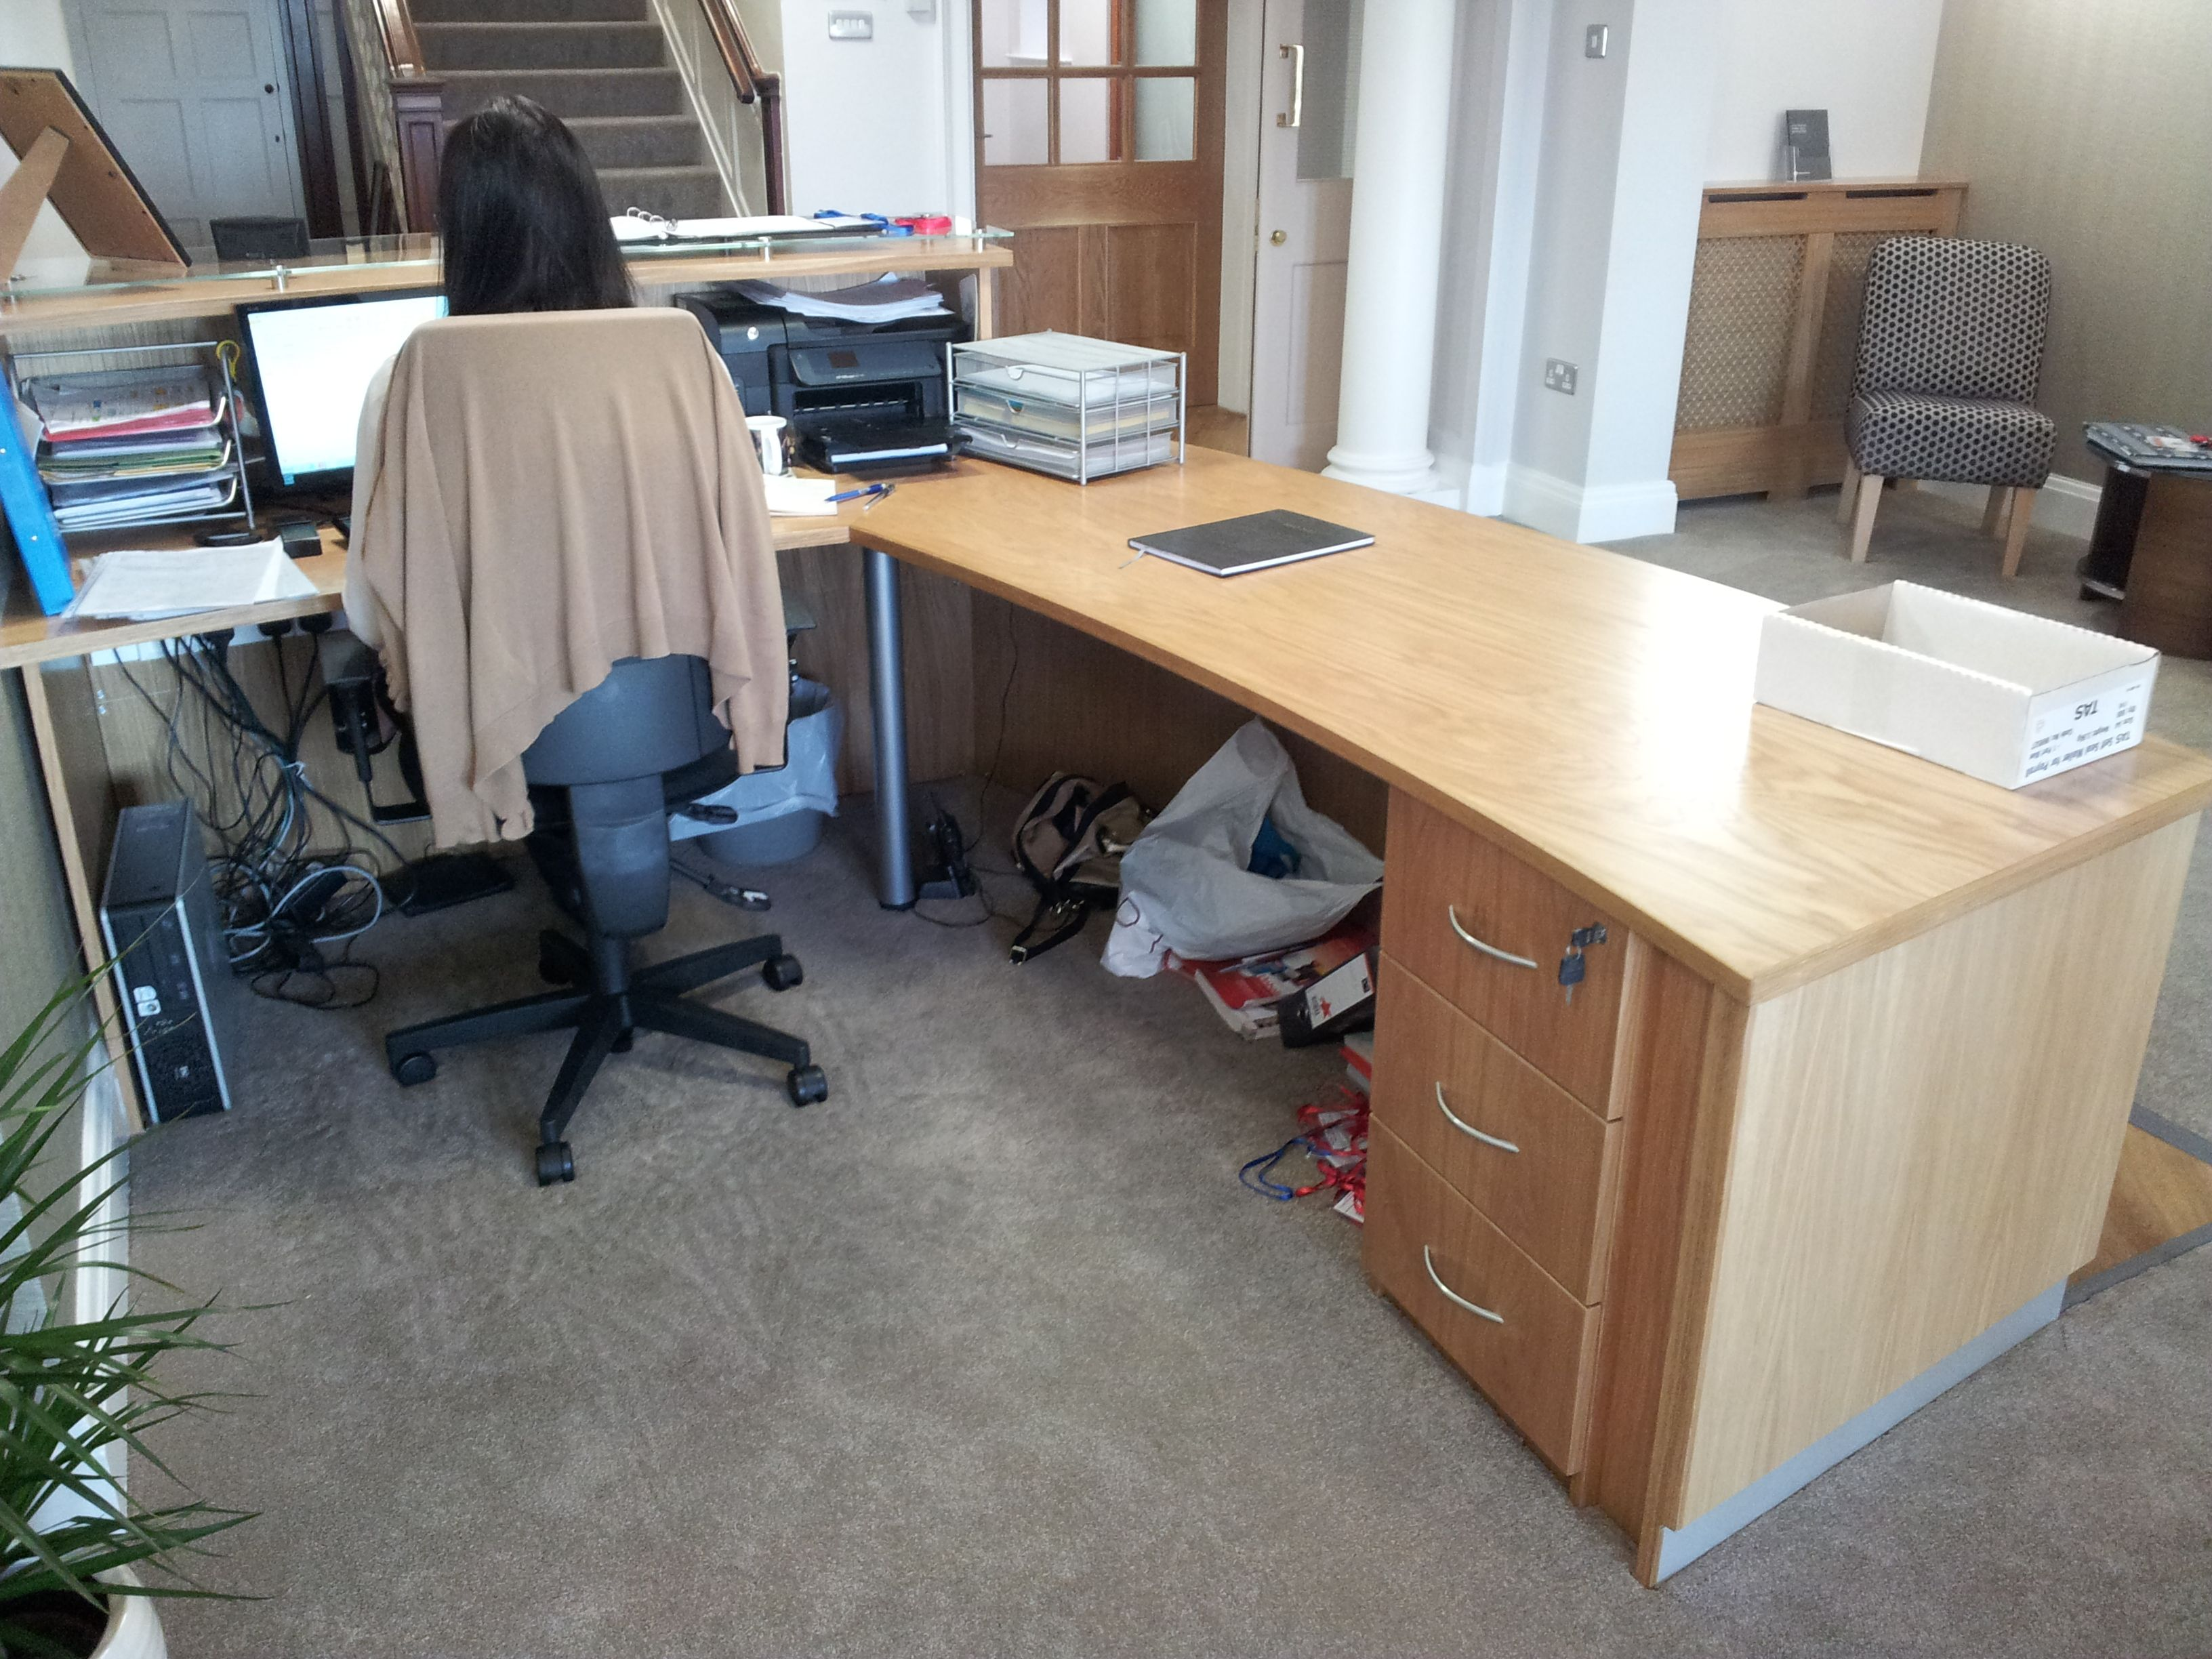 School Reception Desk In Oak Veneer With Small Pedestal And A Raise Section  With A Glass